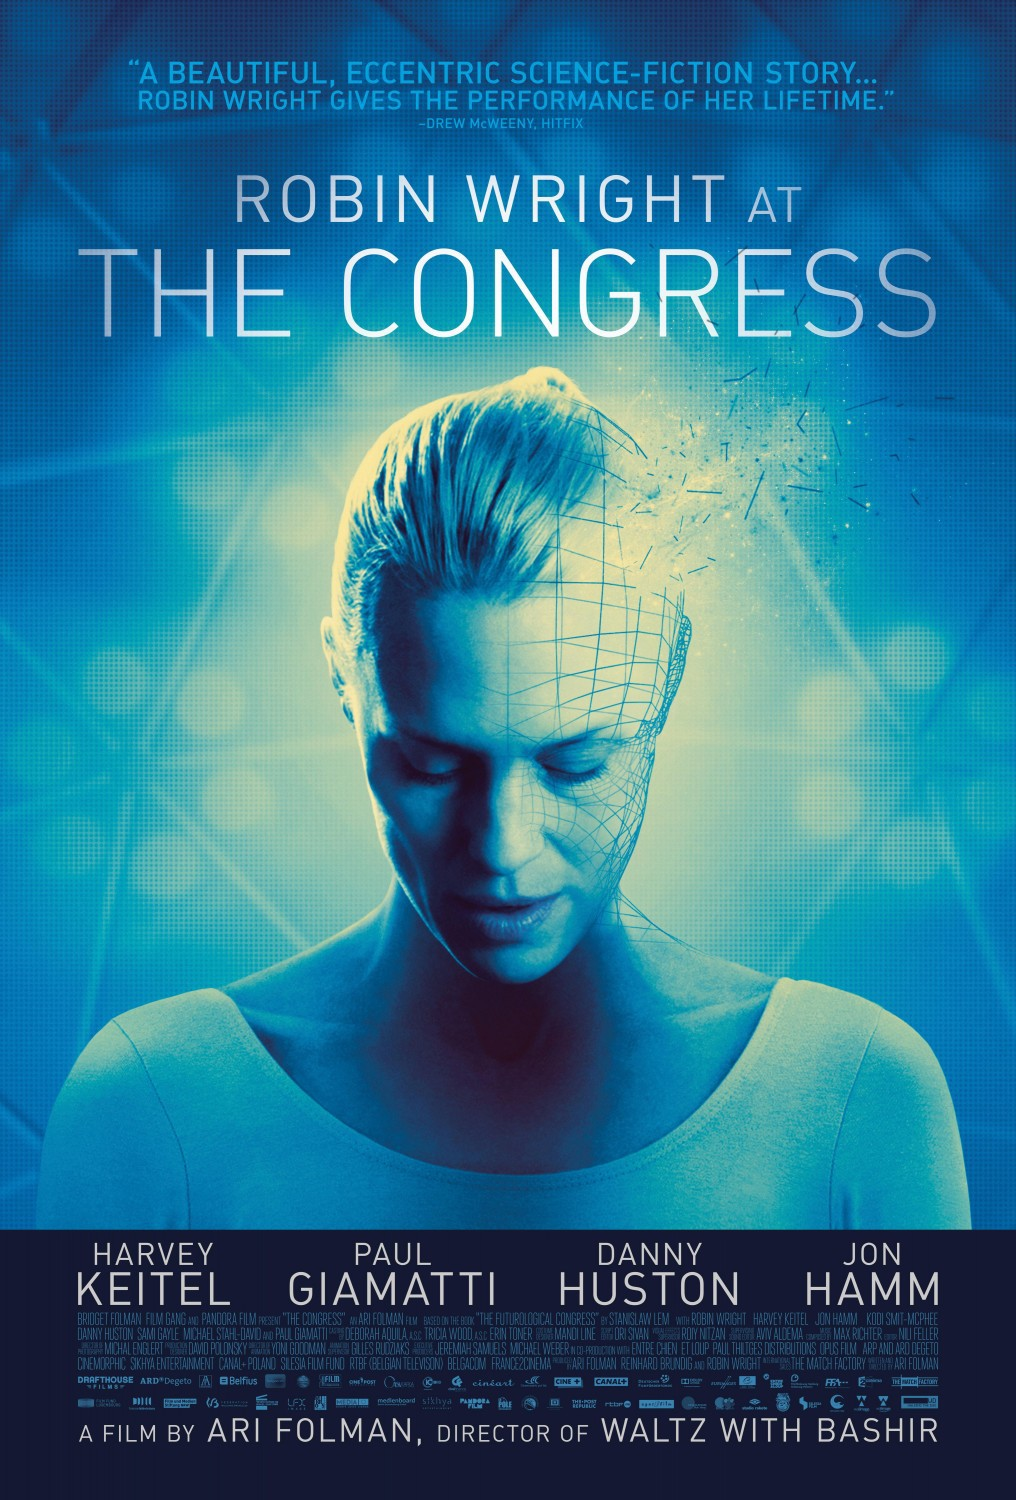 Bildergebnis für The congress movie poster robin wright